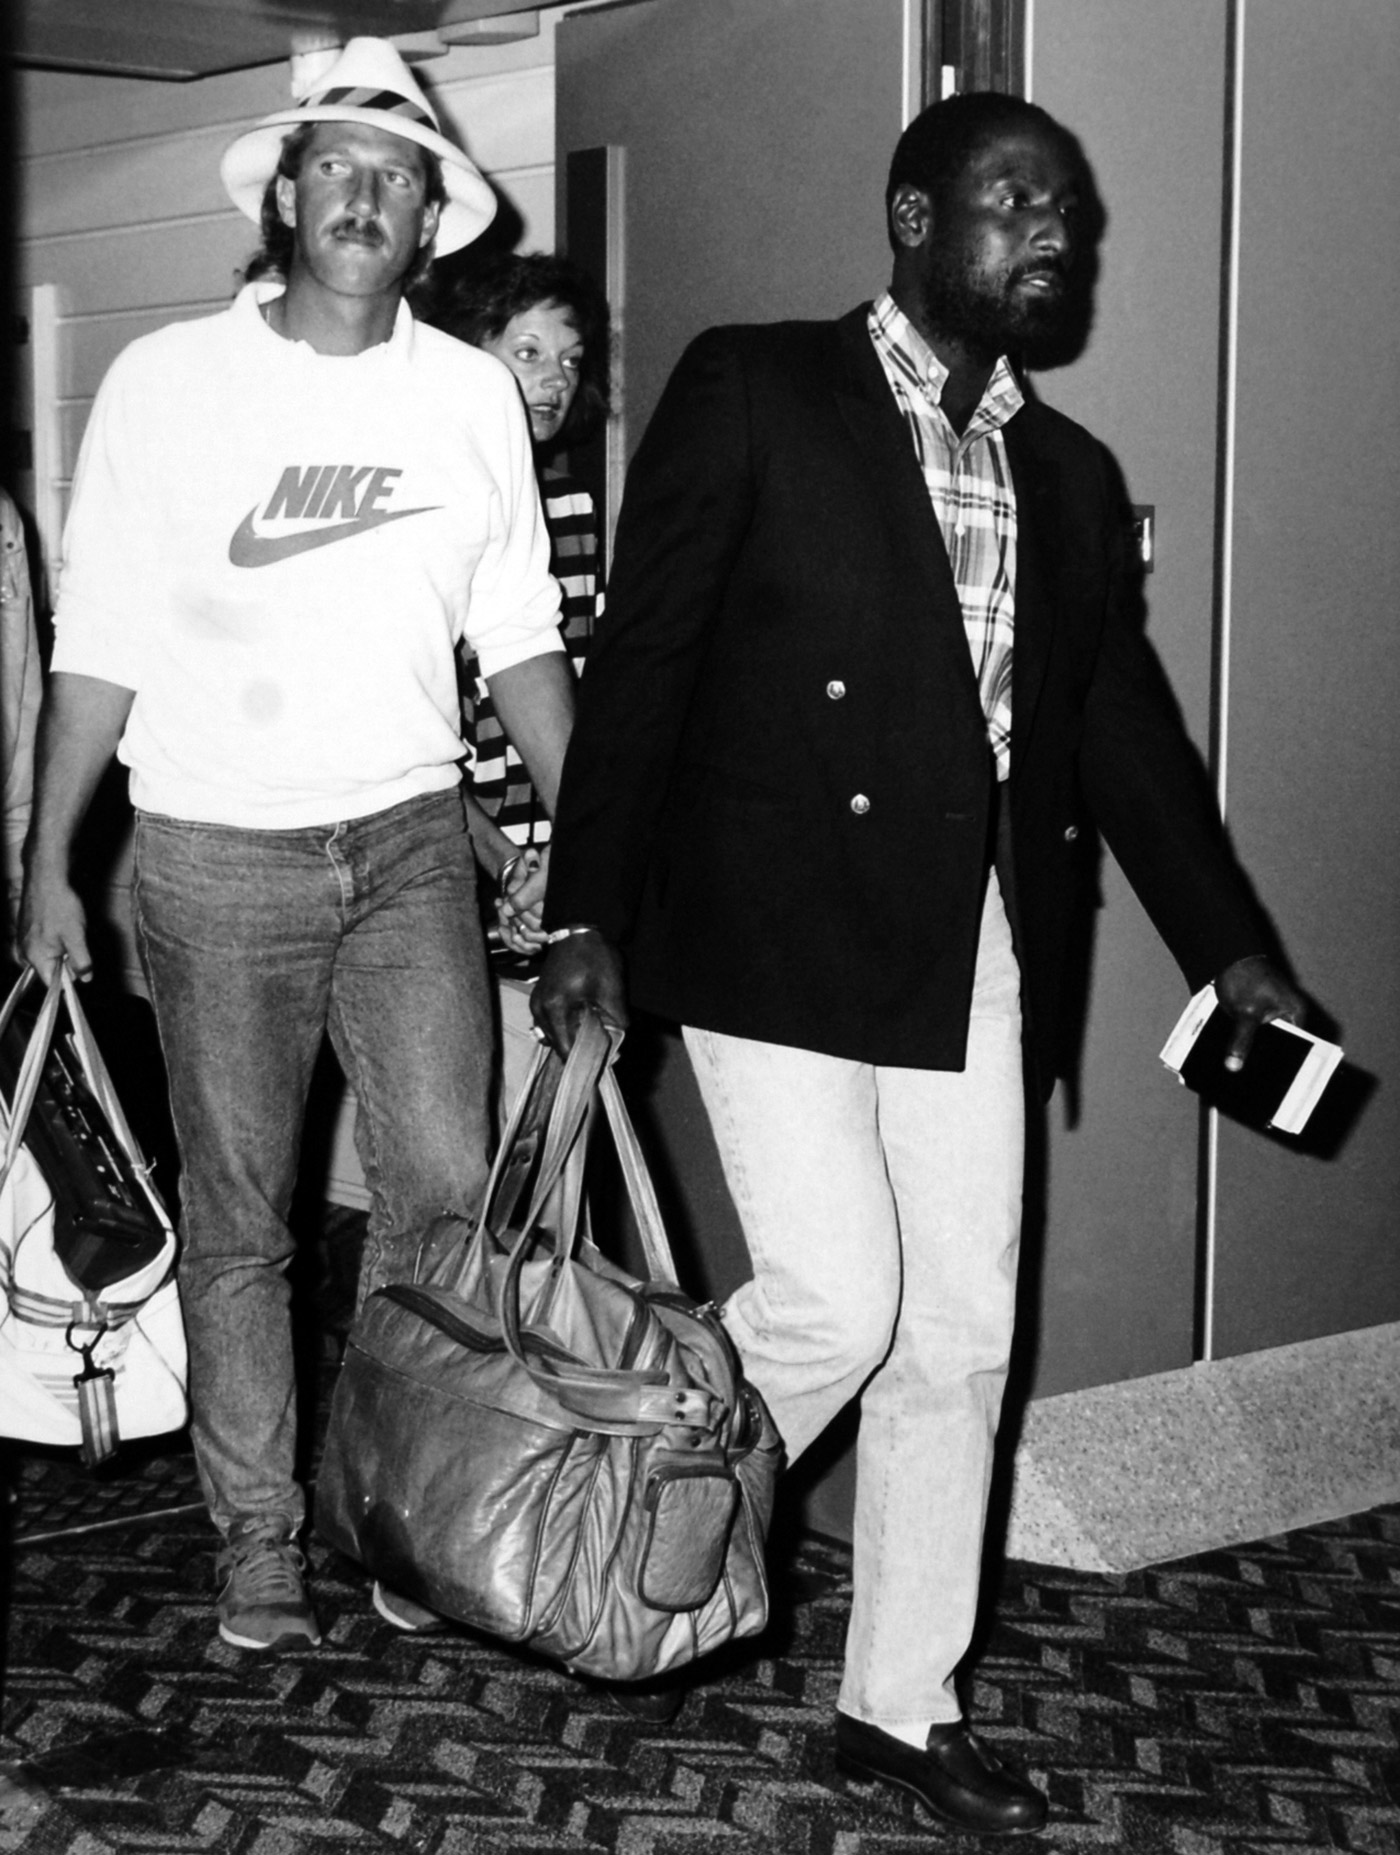 Ian Botham and Viv Richards arrive in London after the series